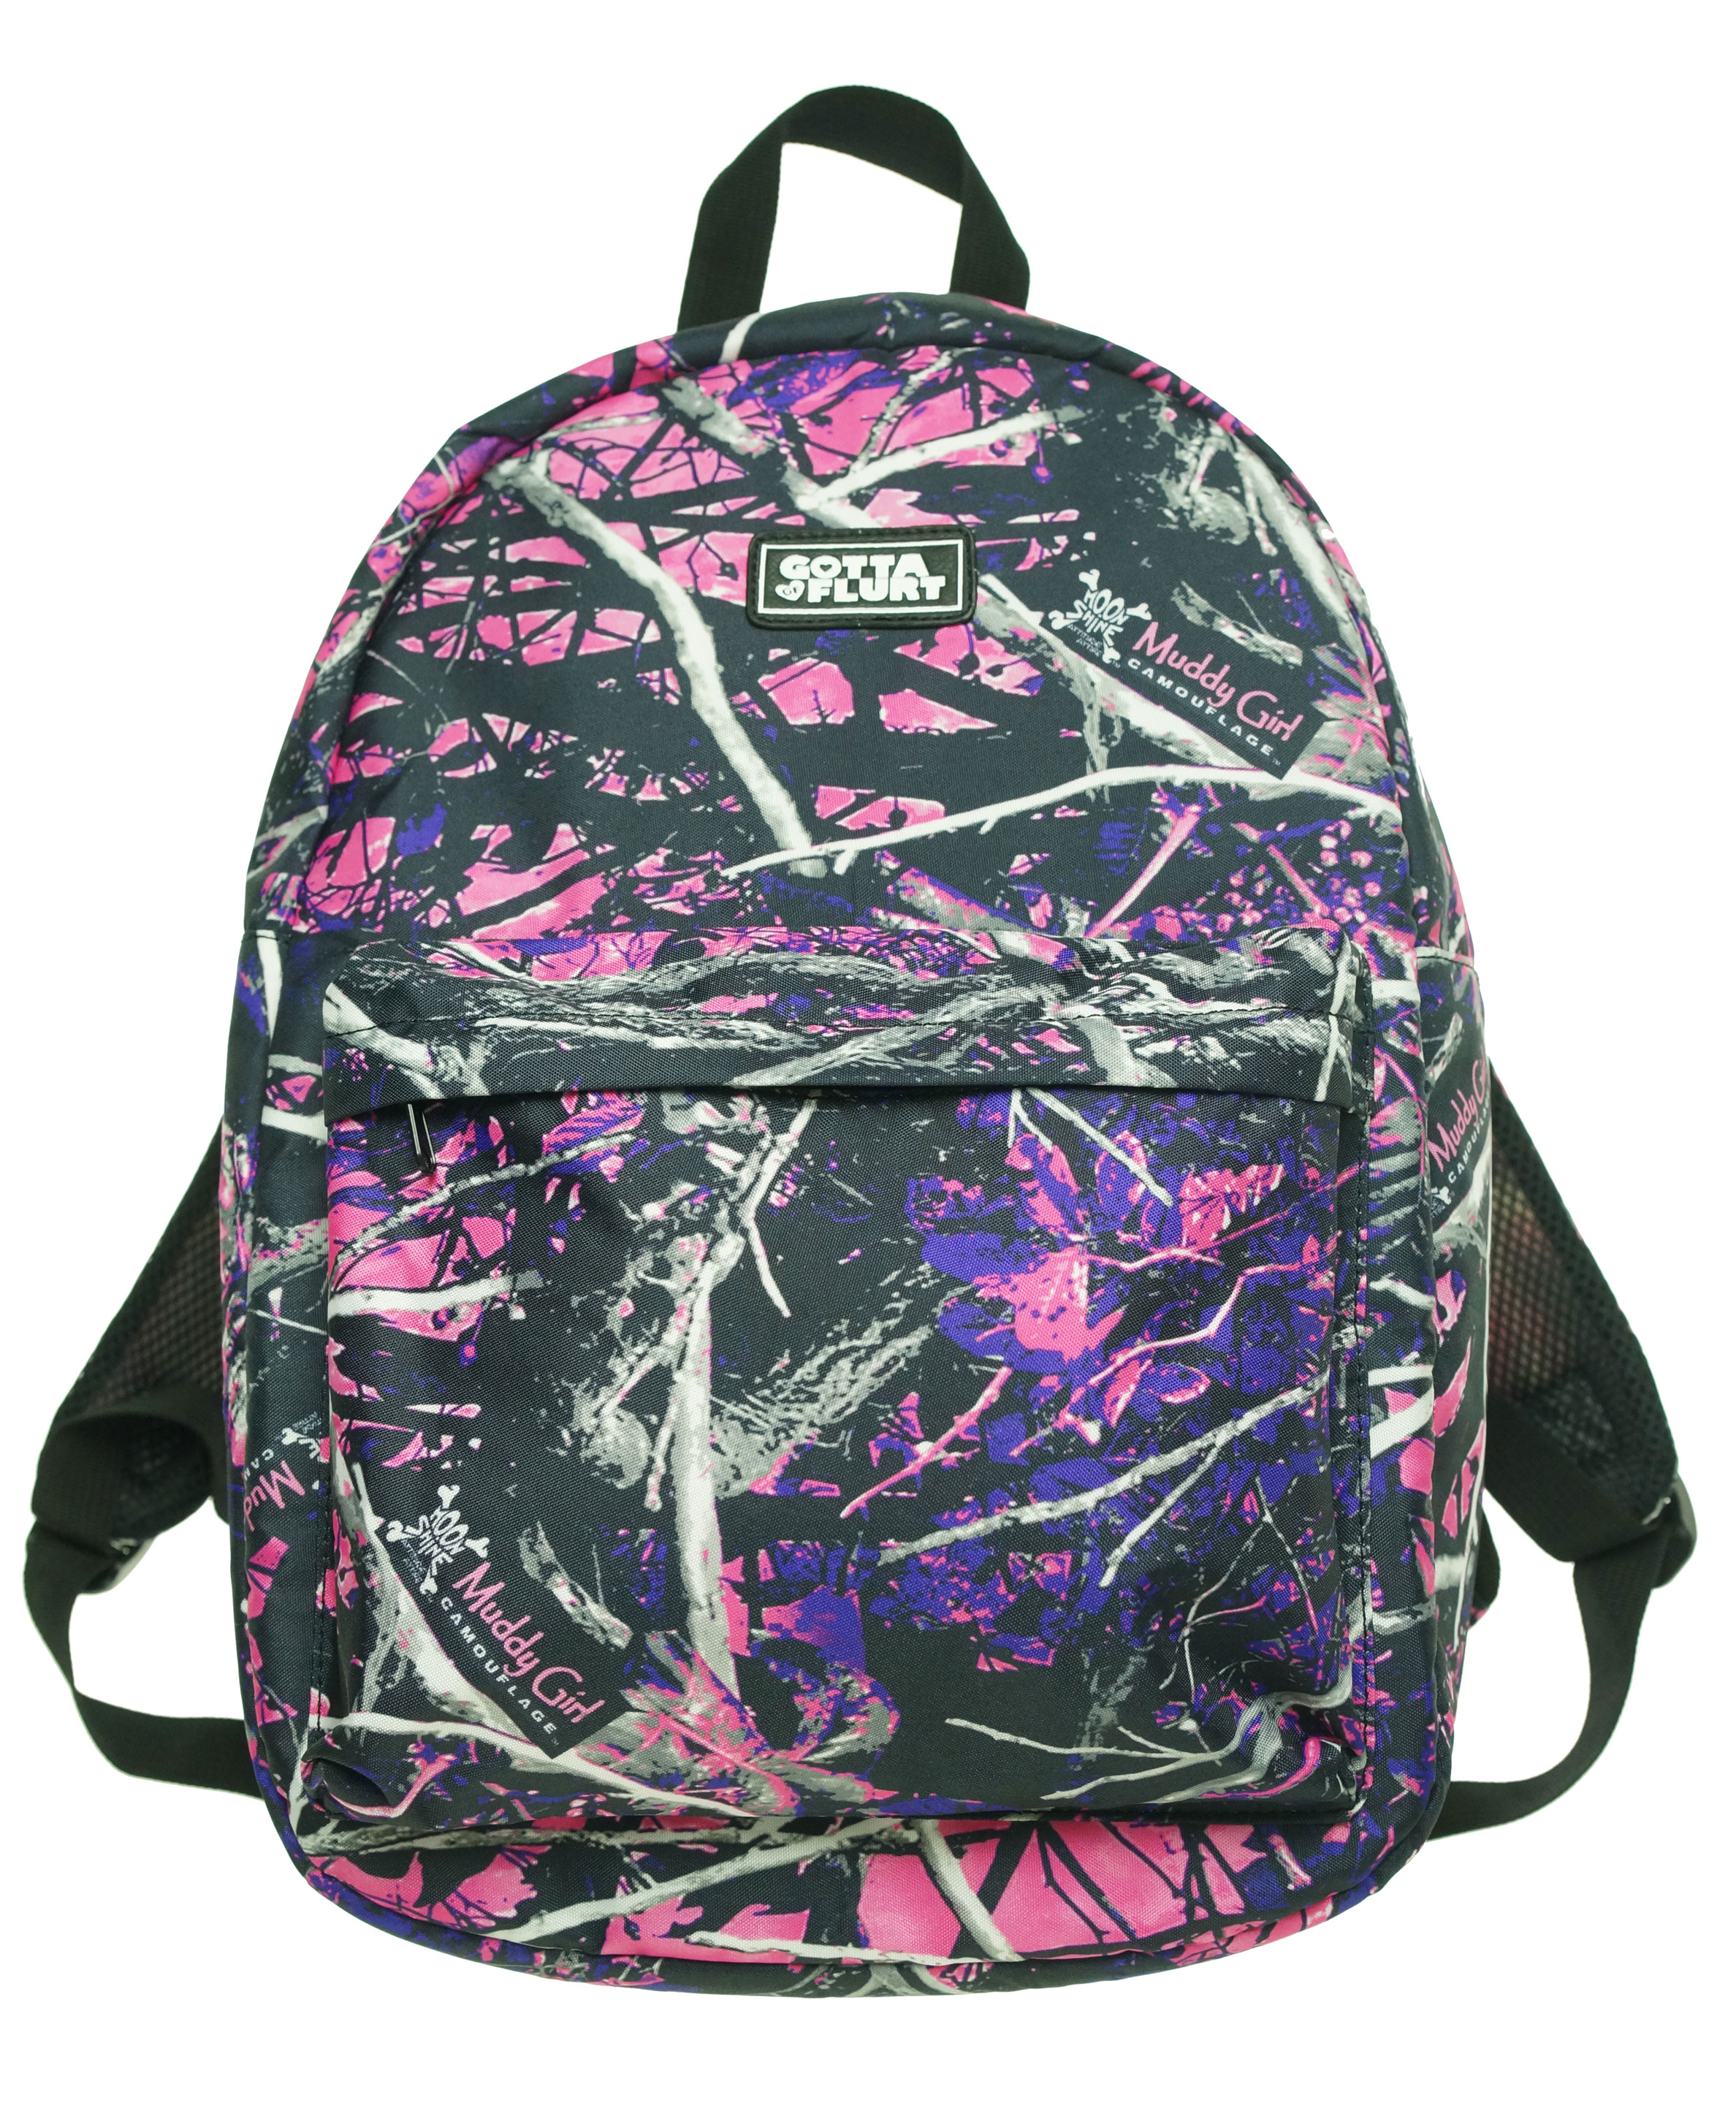 Muddy Girl Pink Purple Camo Exclusive Backpack - Walmart.com